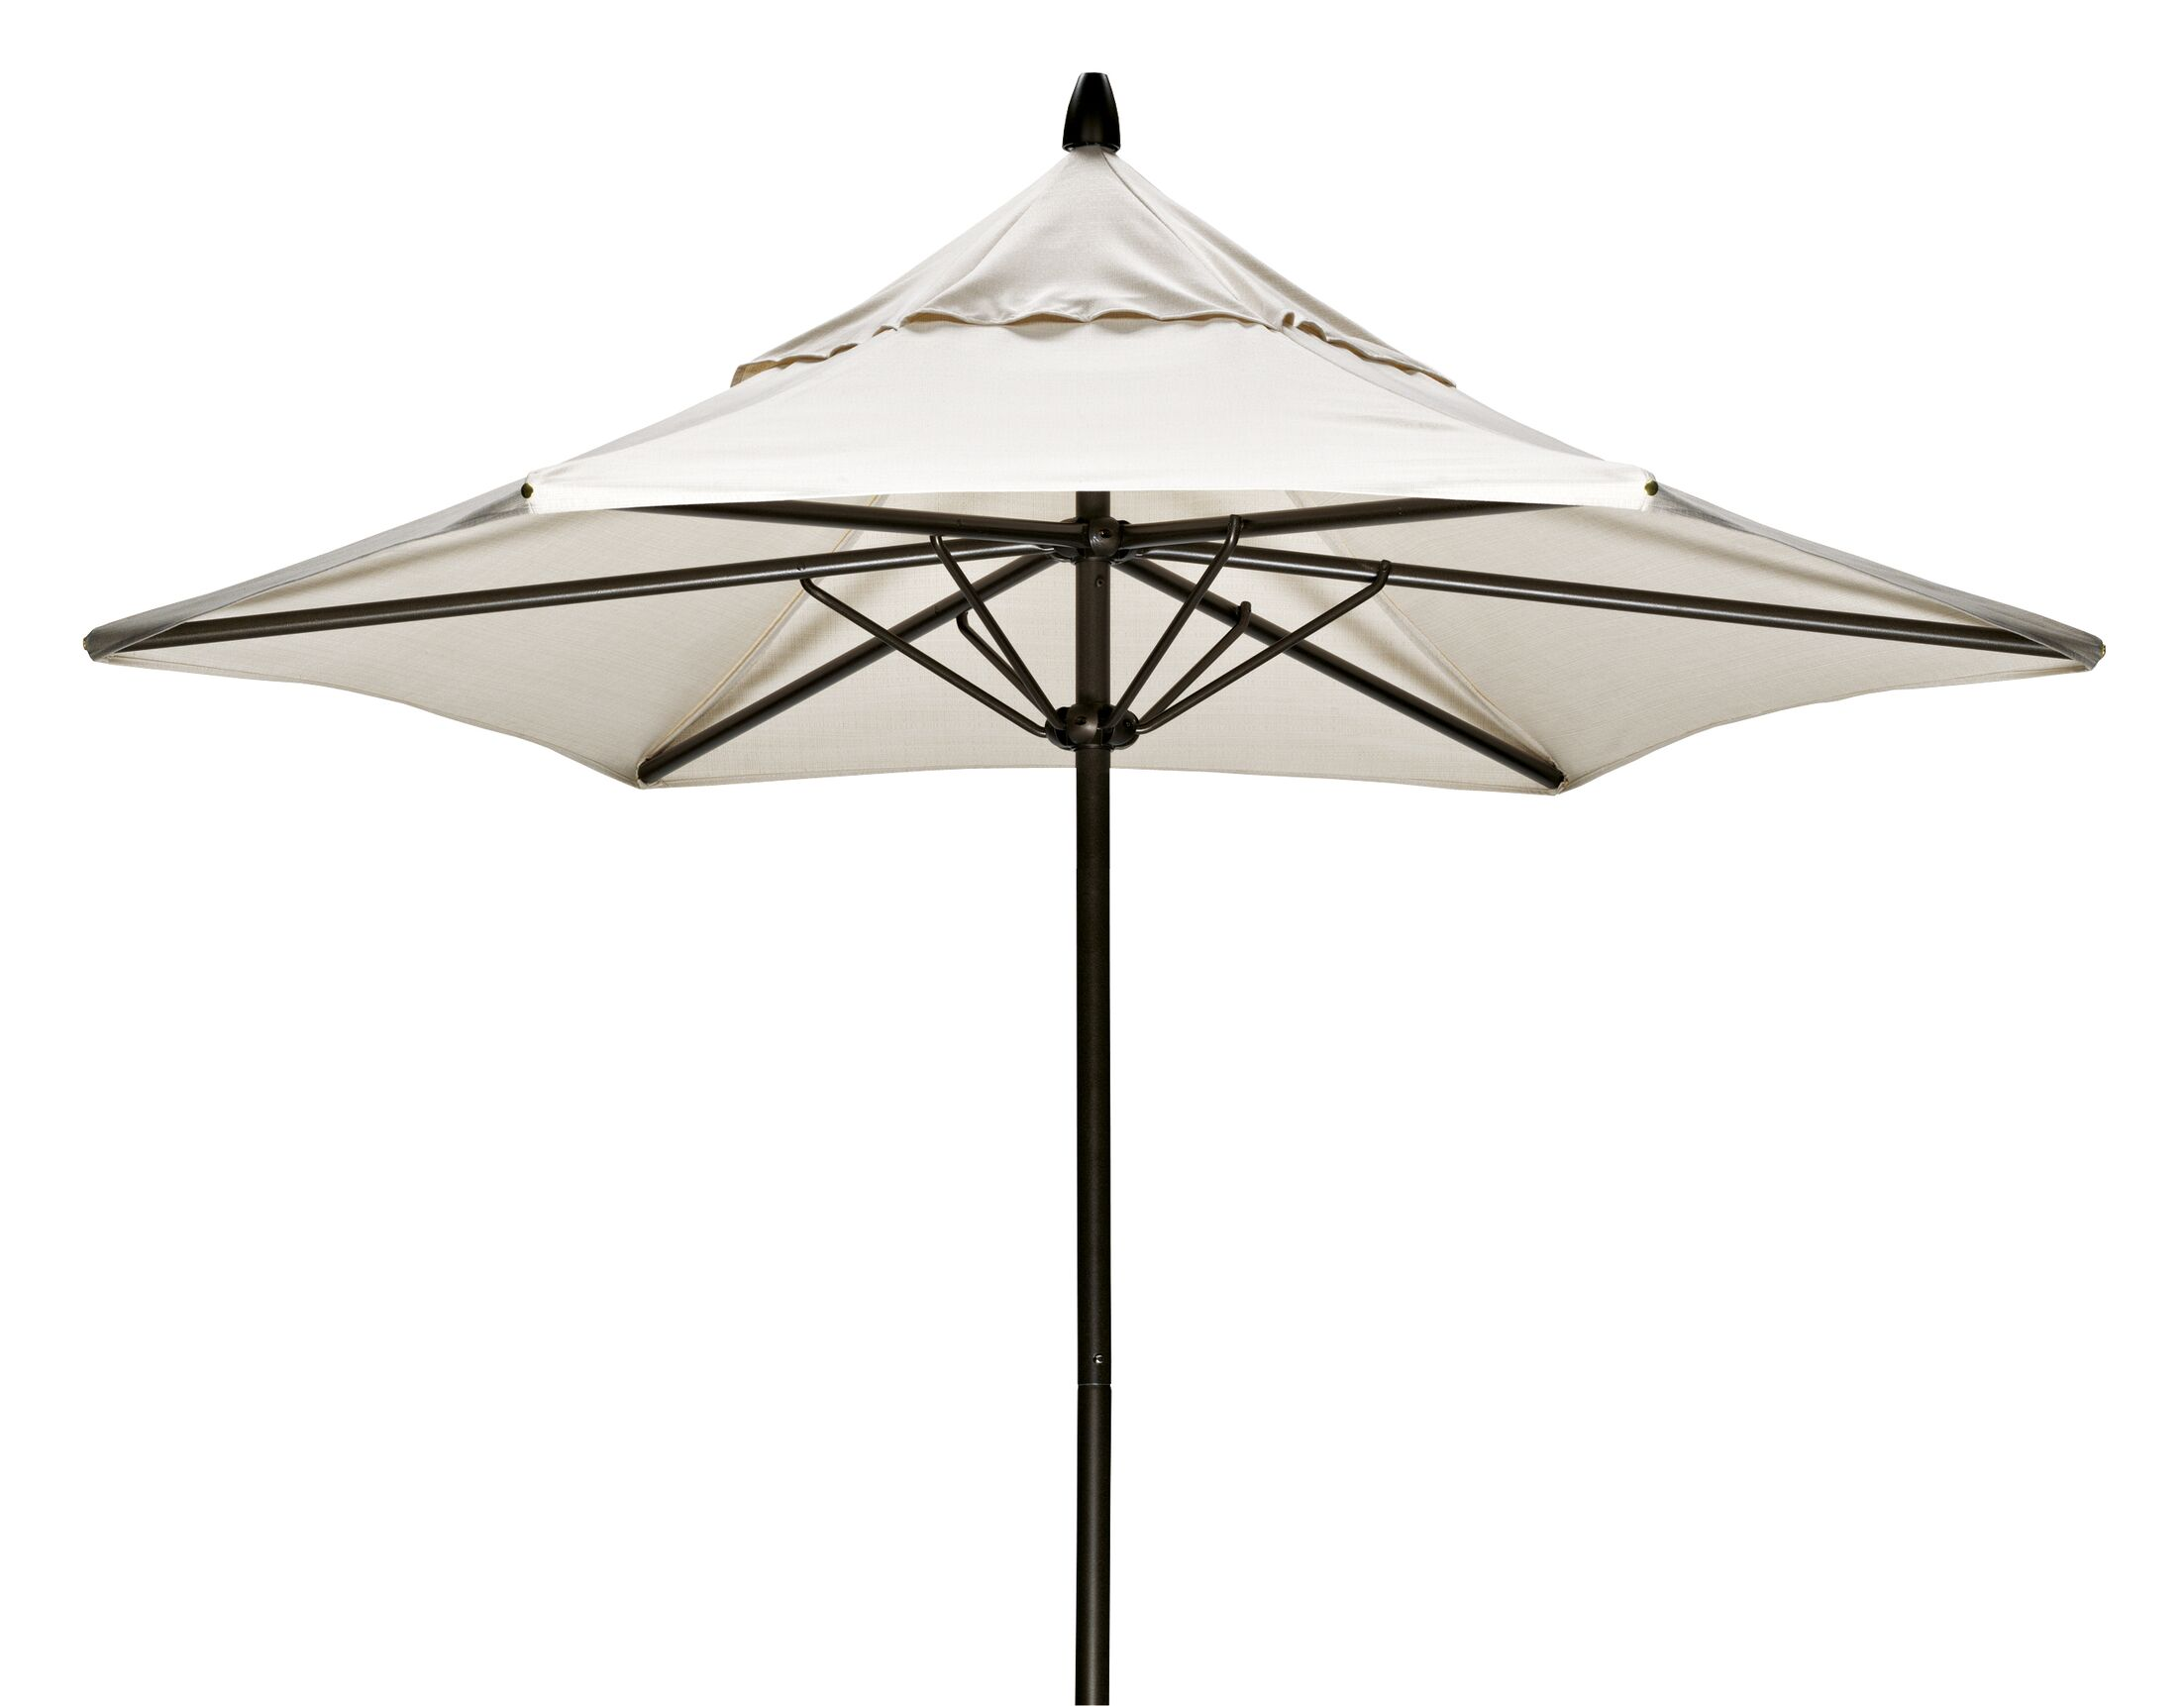 Commercial 7.5' Market Umbrella Frame Finish: Textured Silver, Fabric: Paris